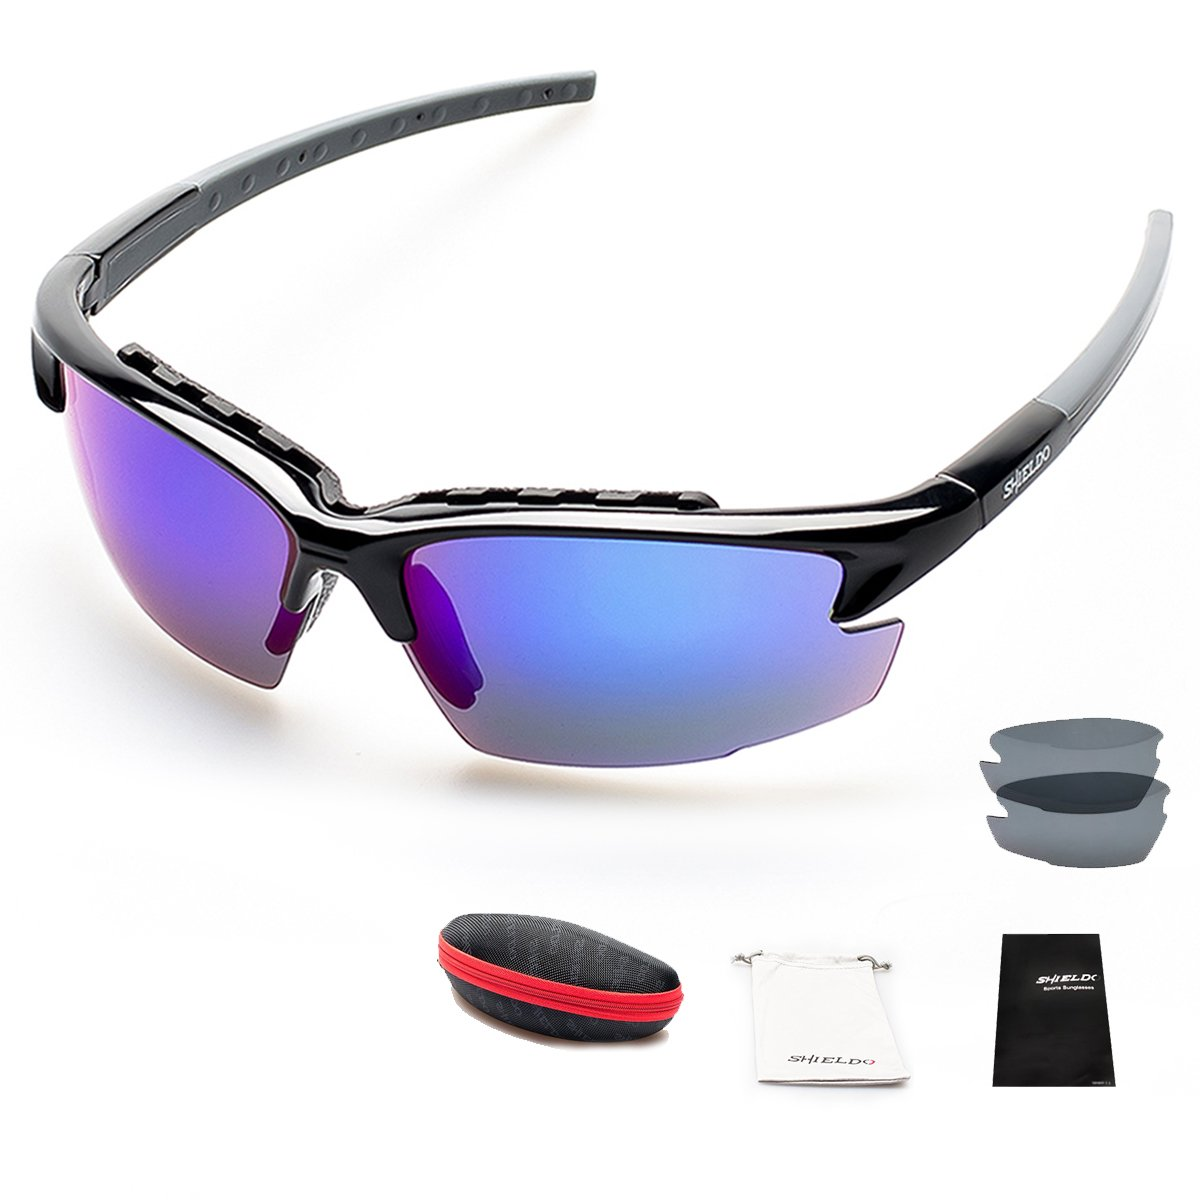 6d3115b7e49b So what do anglers prefer if they don't want to spend a large sum on their  eyewear? A pair of Shieldo Polarized Sports Sunglasses.